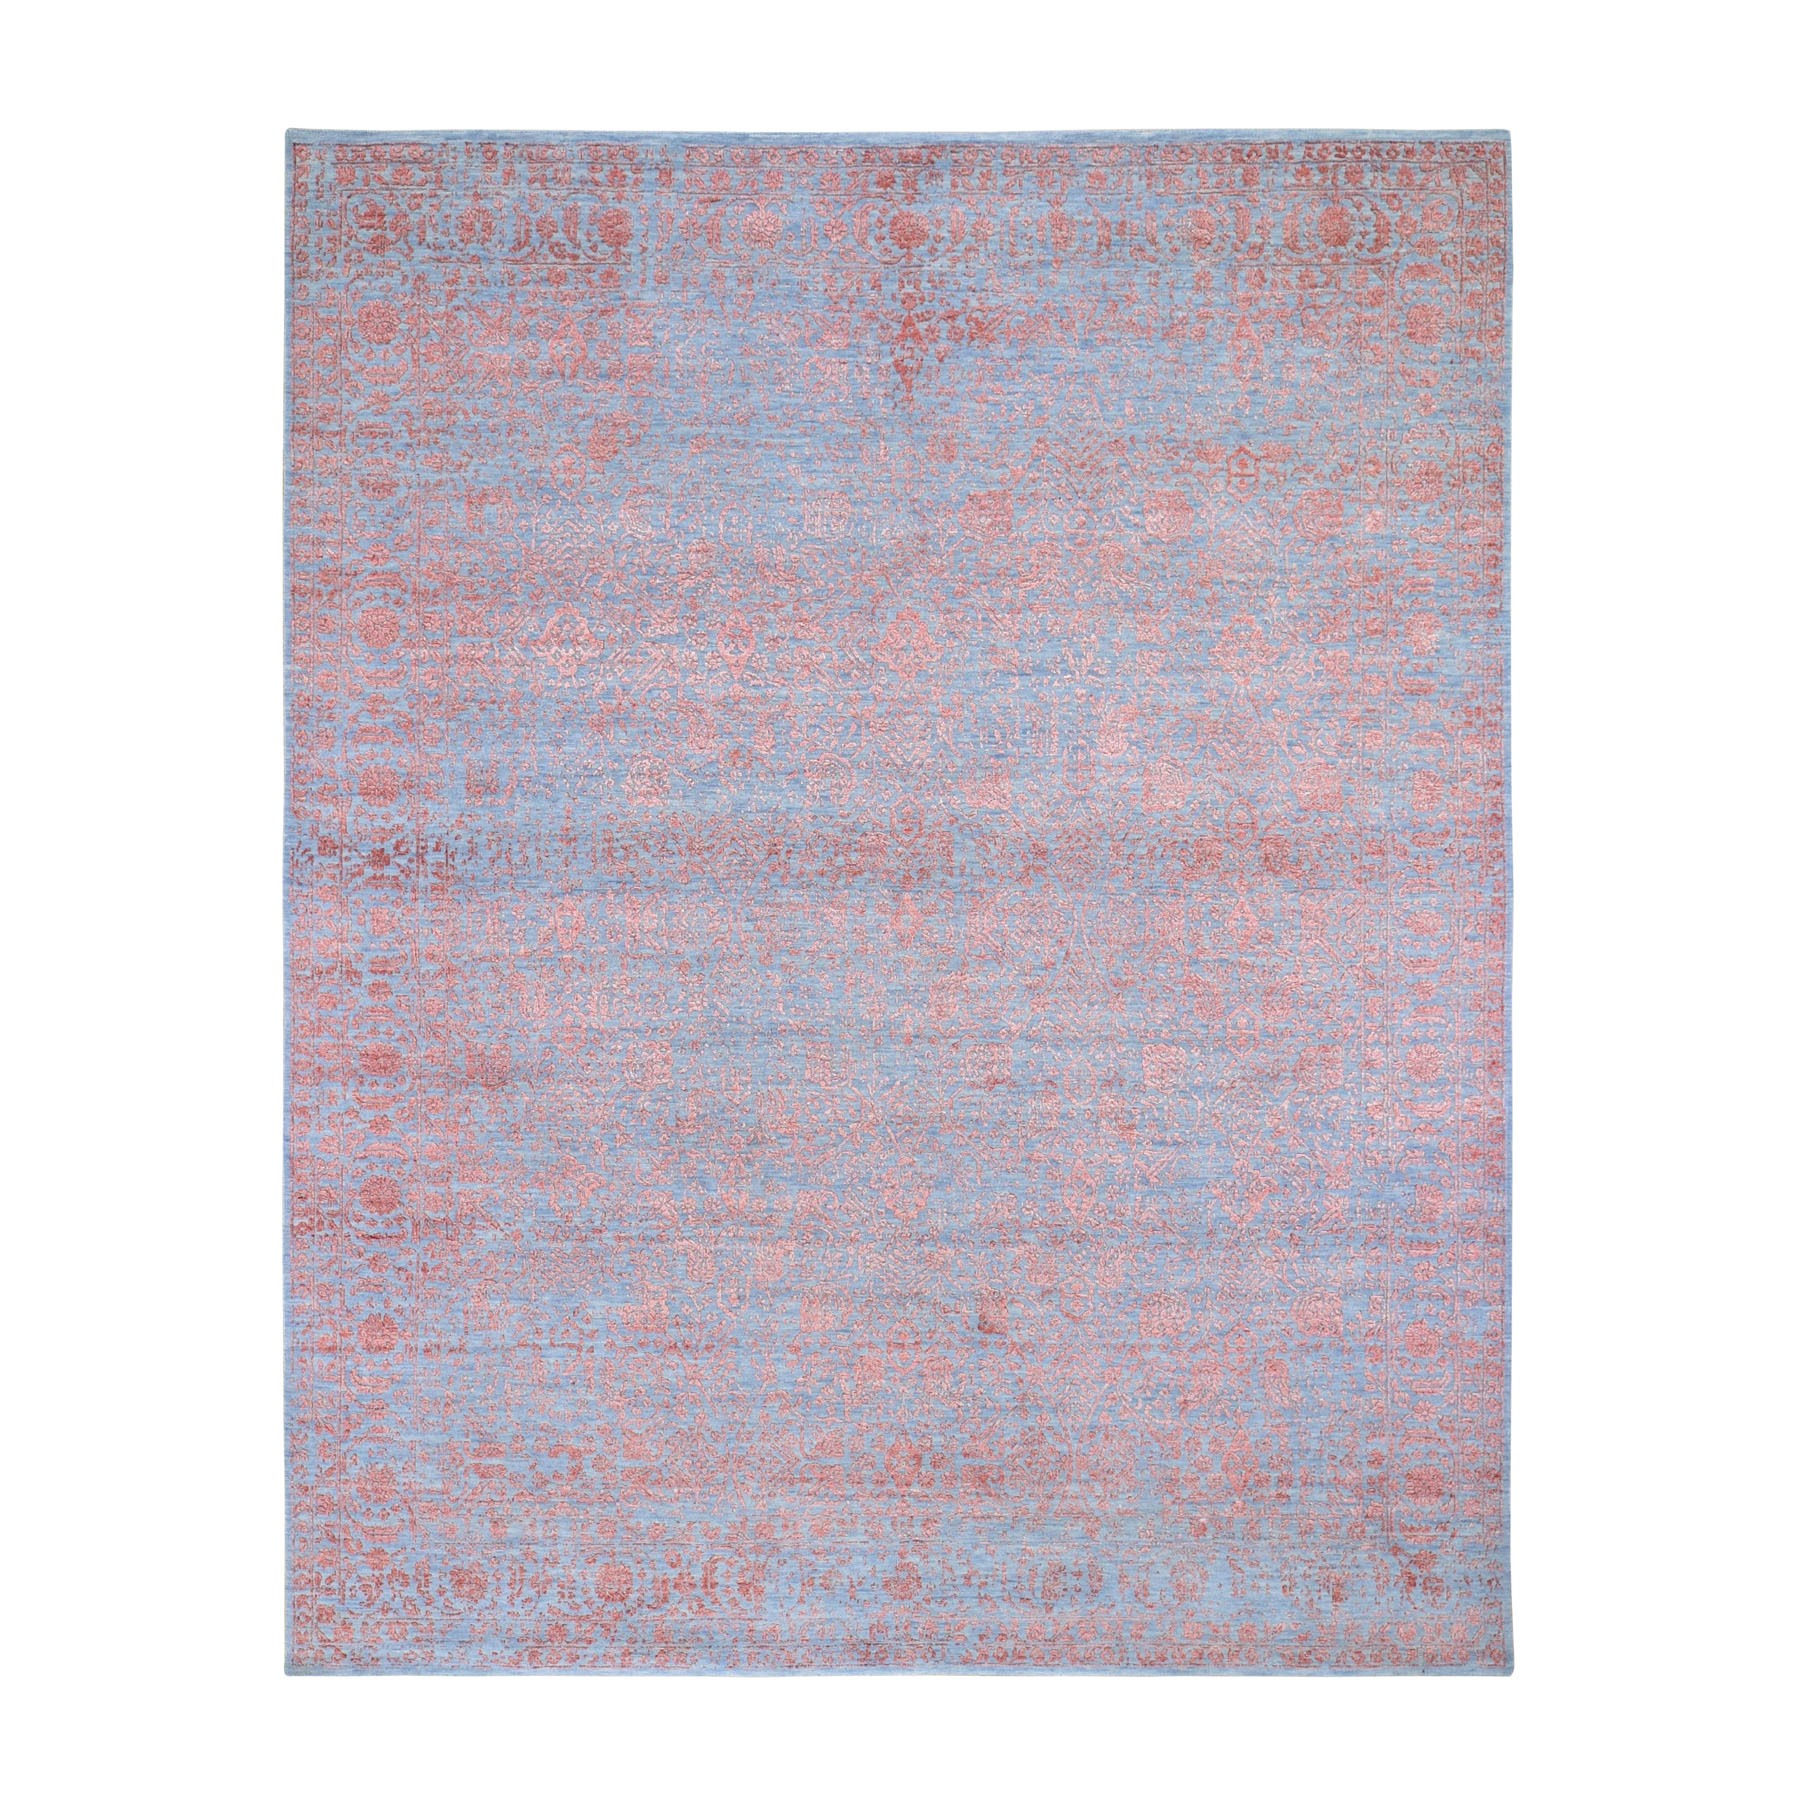 """8'X9'9"""" Rust Tone On Tone Wool And Silk Erased Vase Design Hand Knotted Oriental Rug moad896a"""